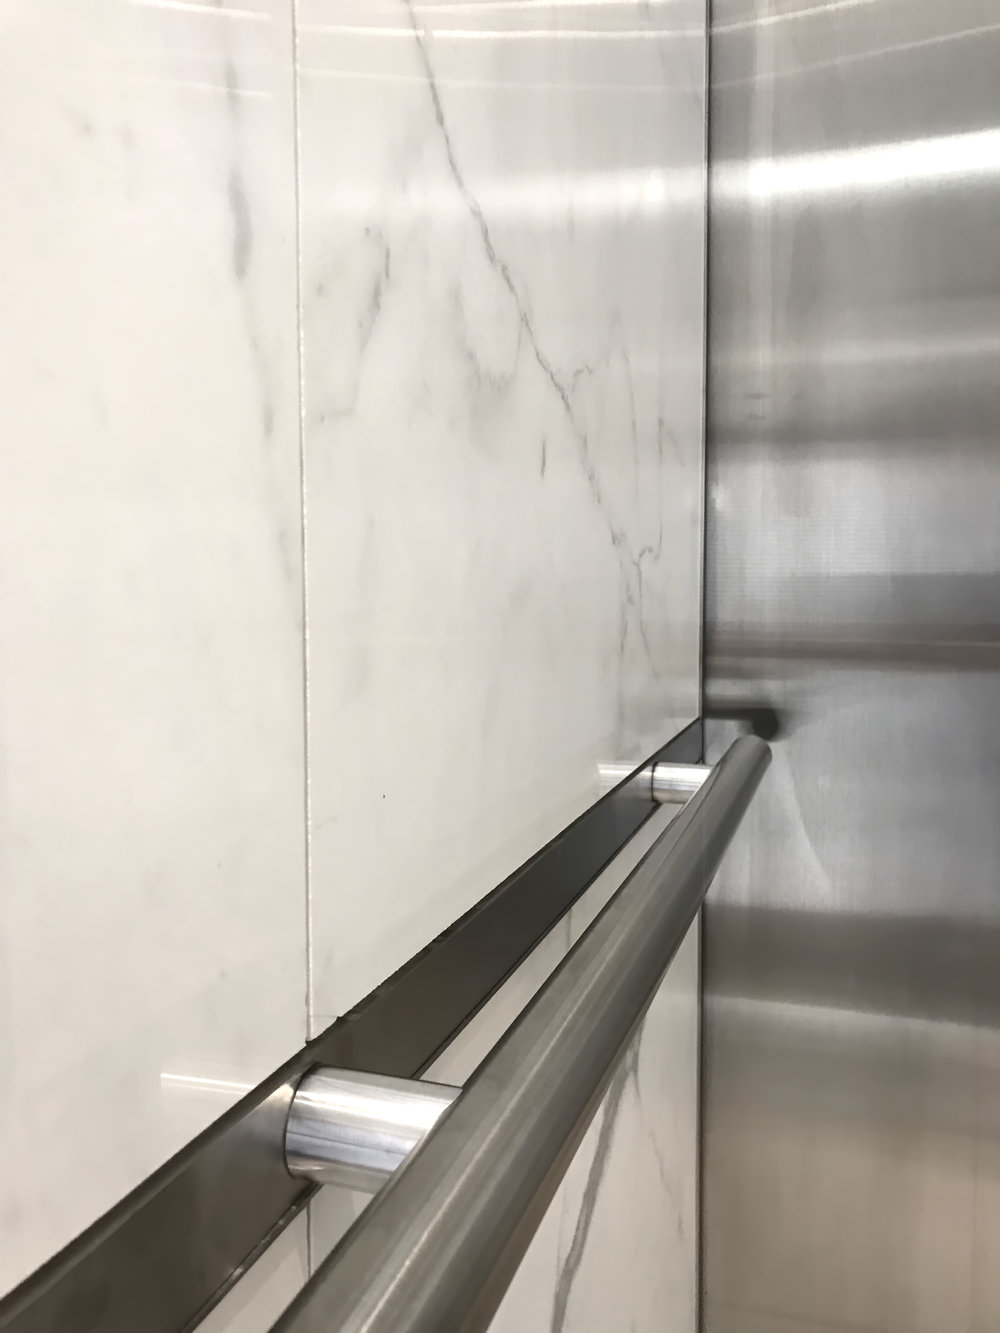 Stainless Steel Tubular Handrail